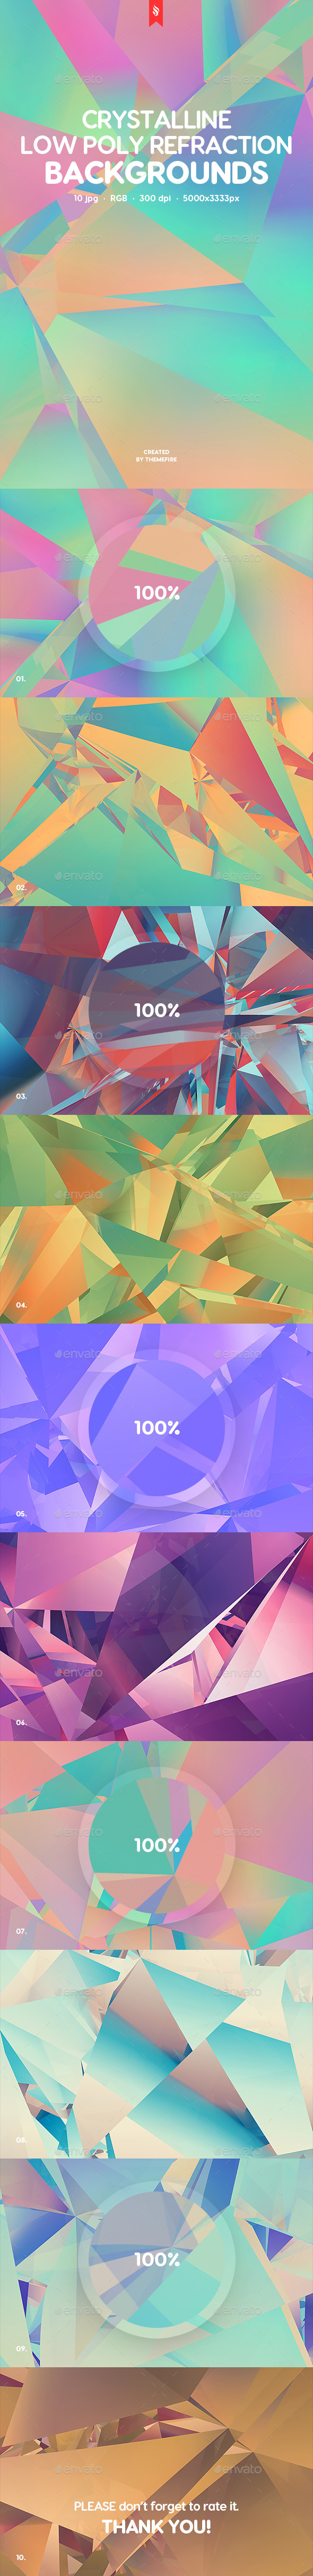 Crystalline Low Poly Refraction Backgrounds - Backgrounds Graphics